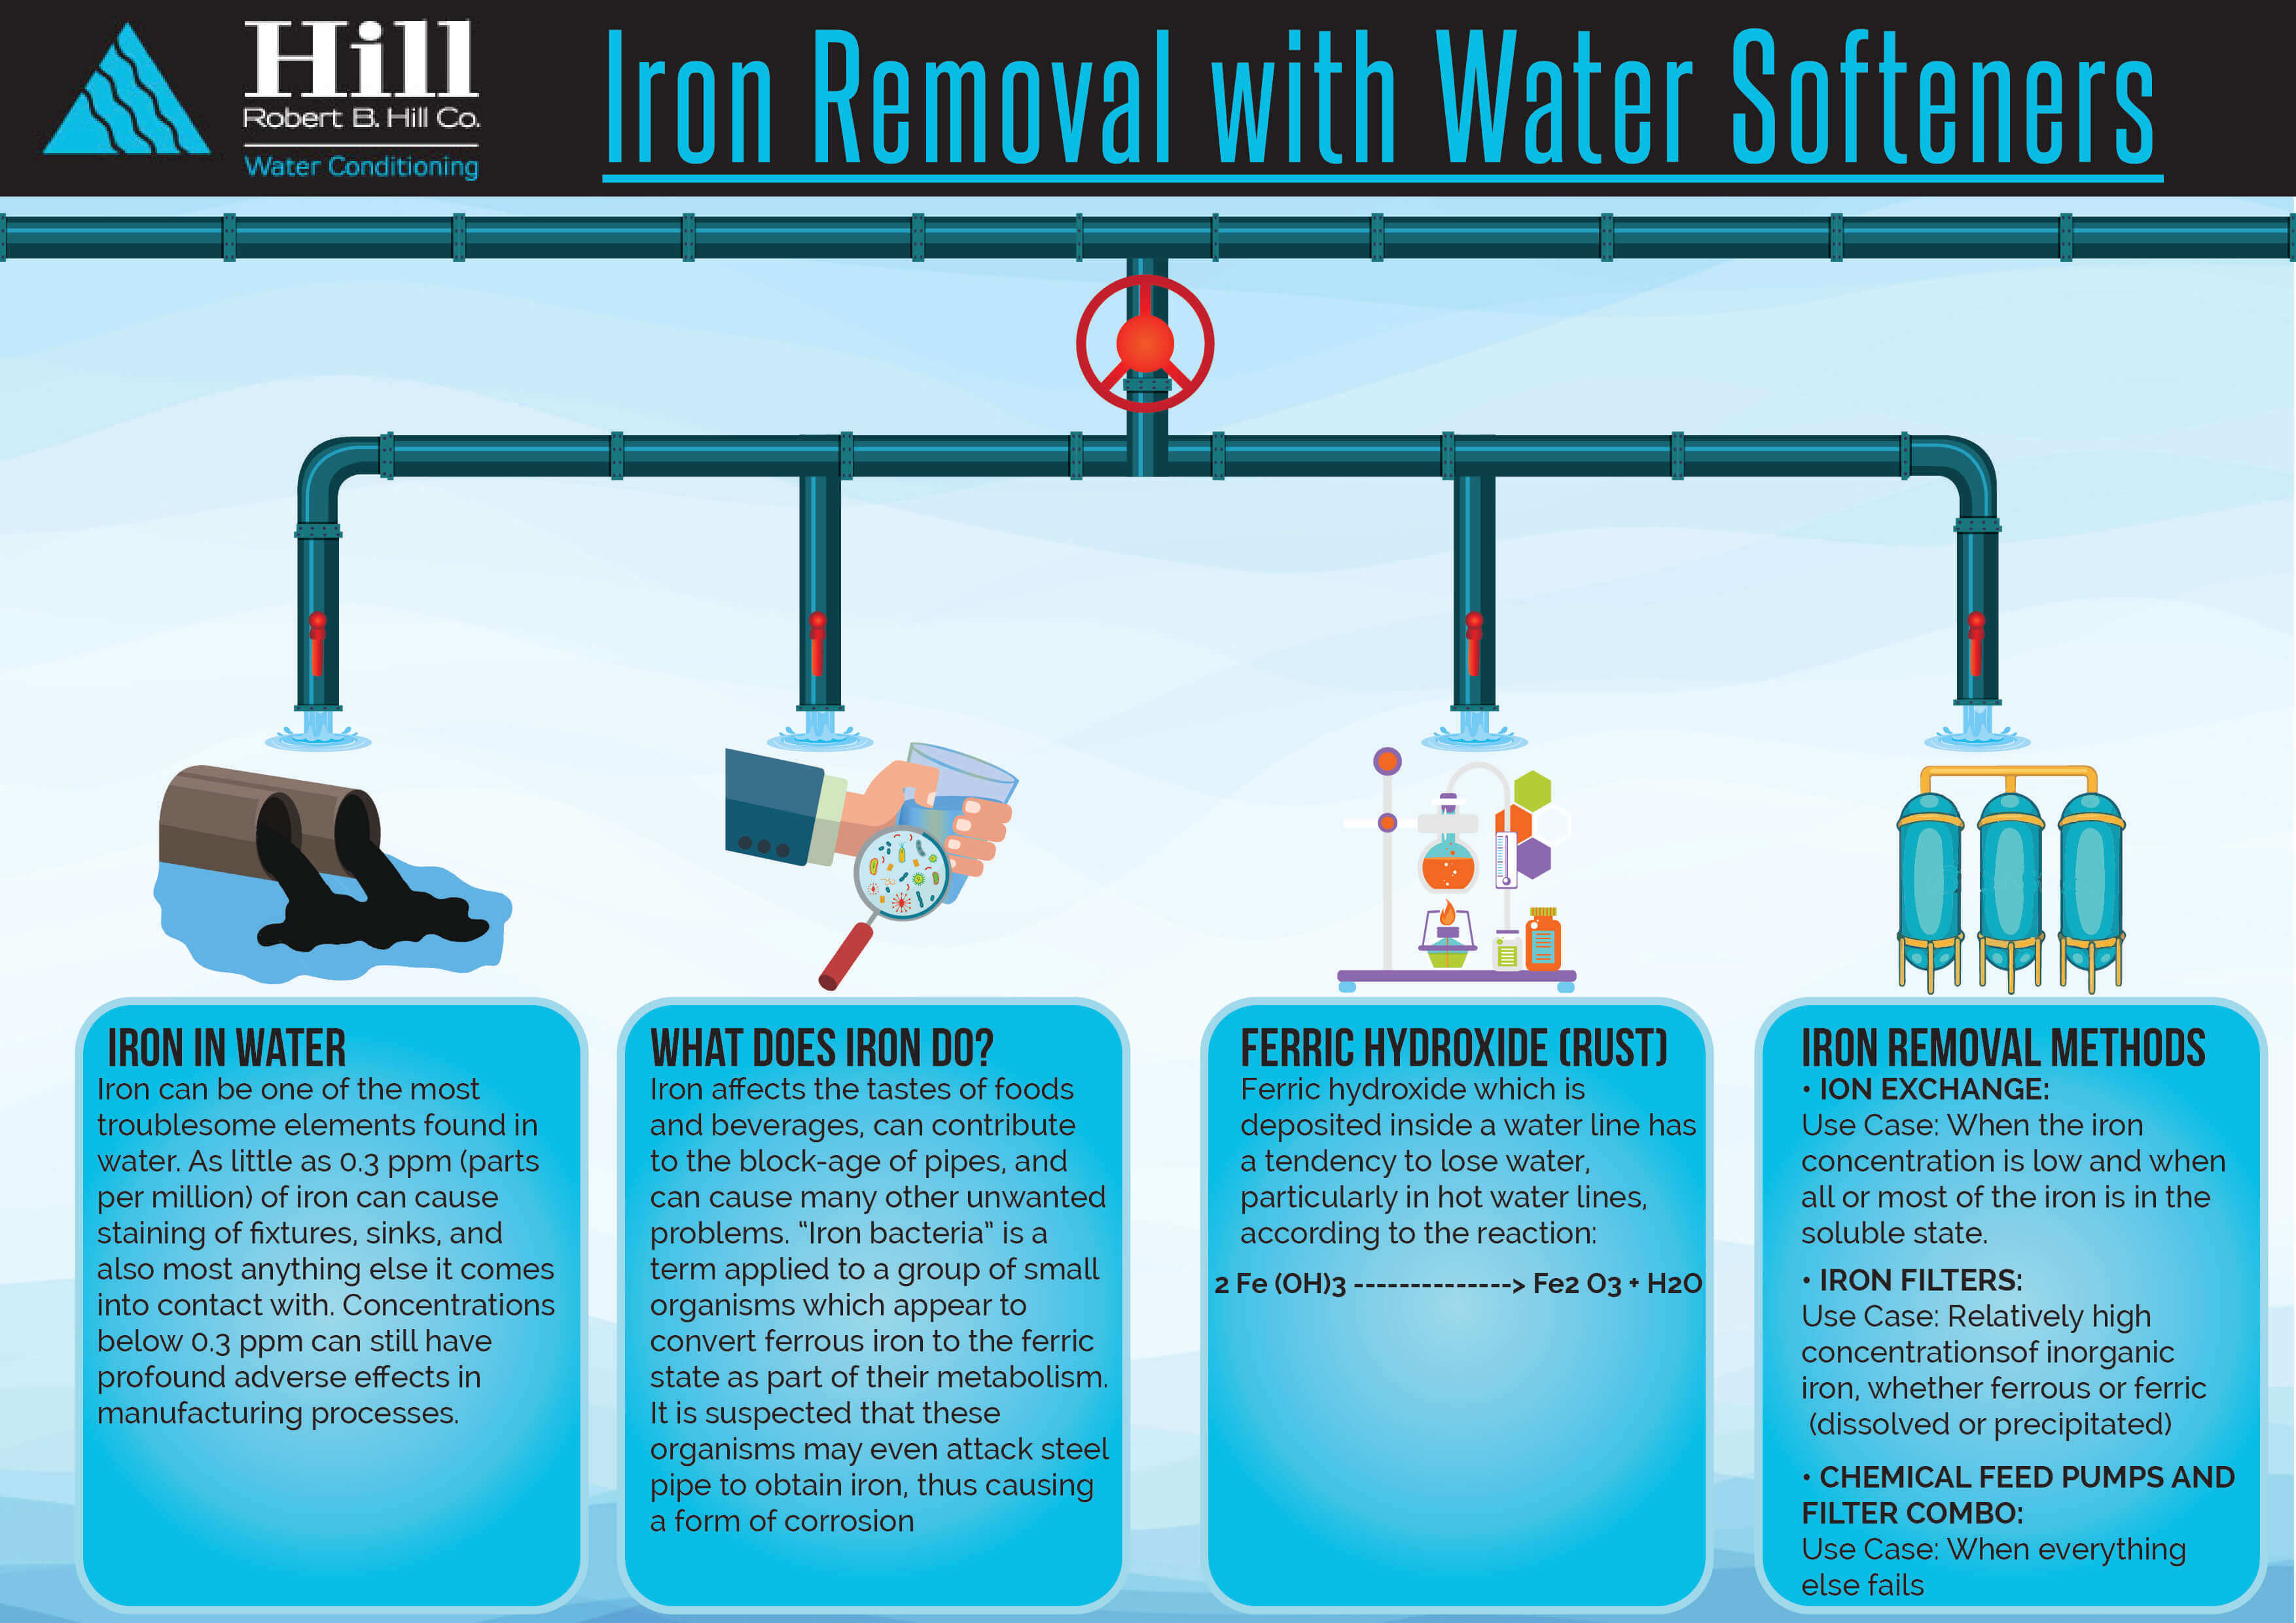 iron removal with water softeners and